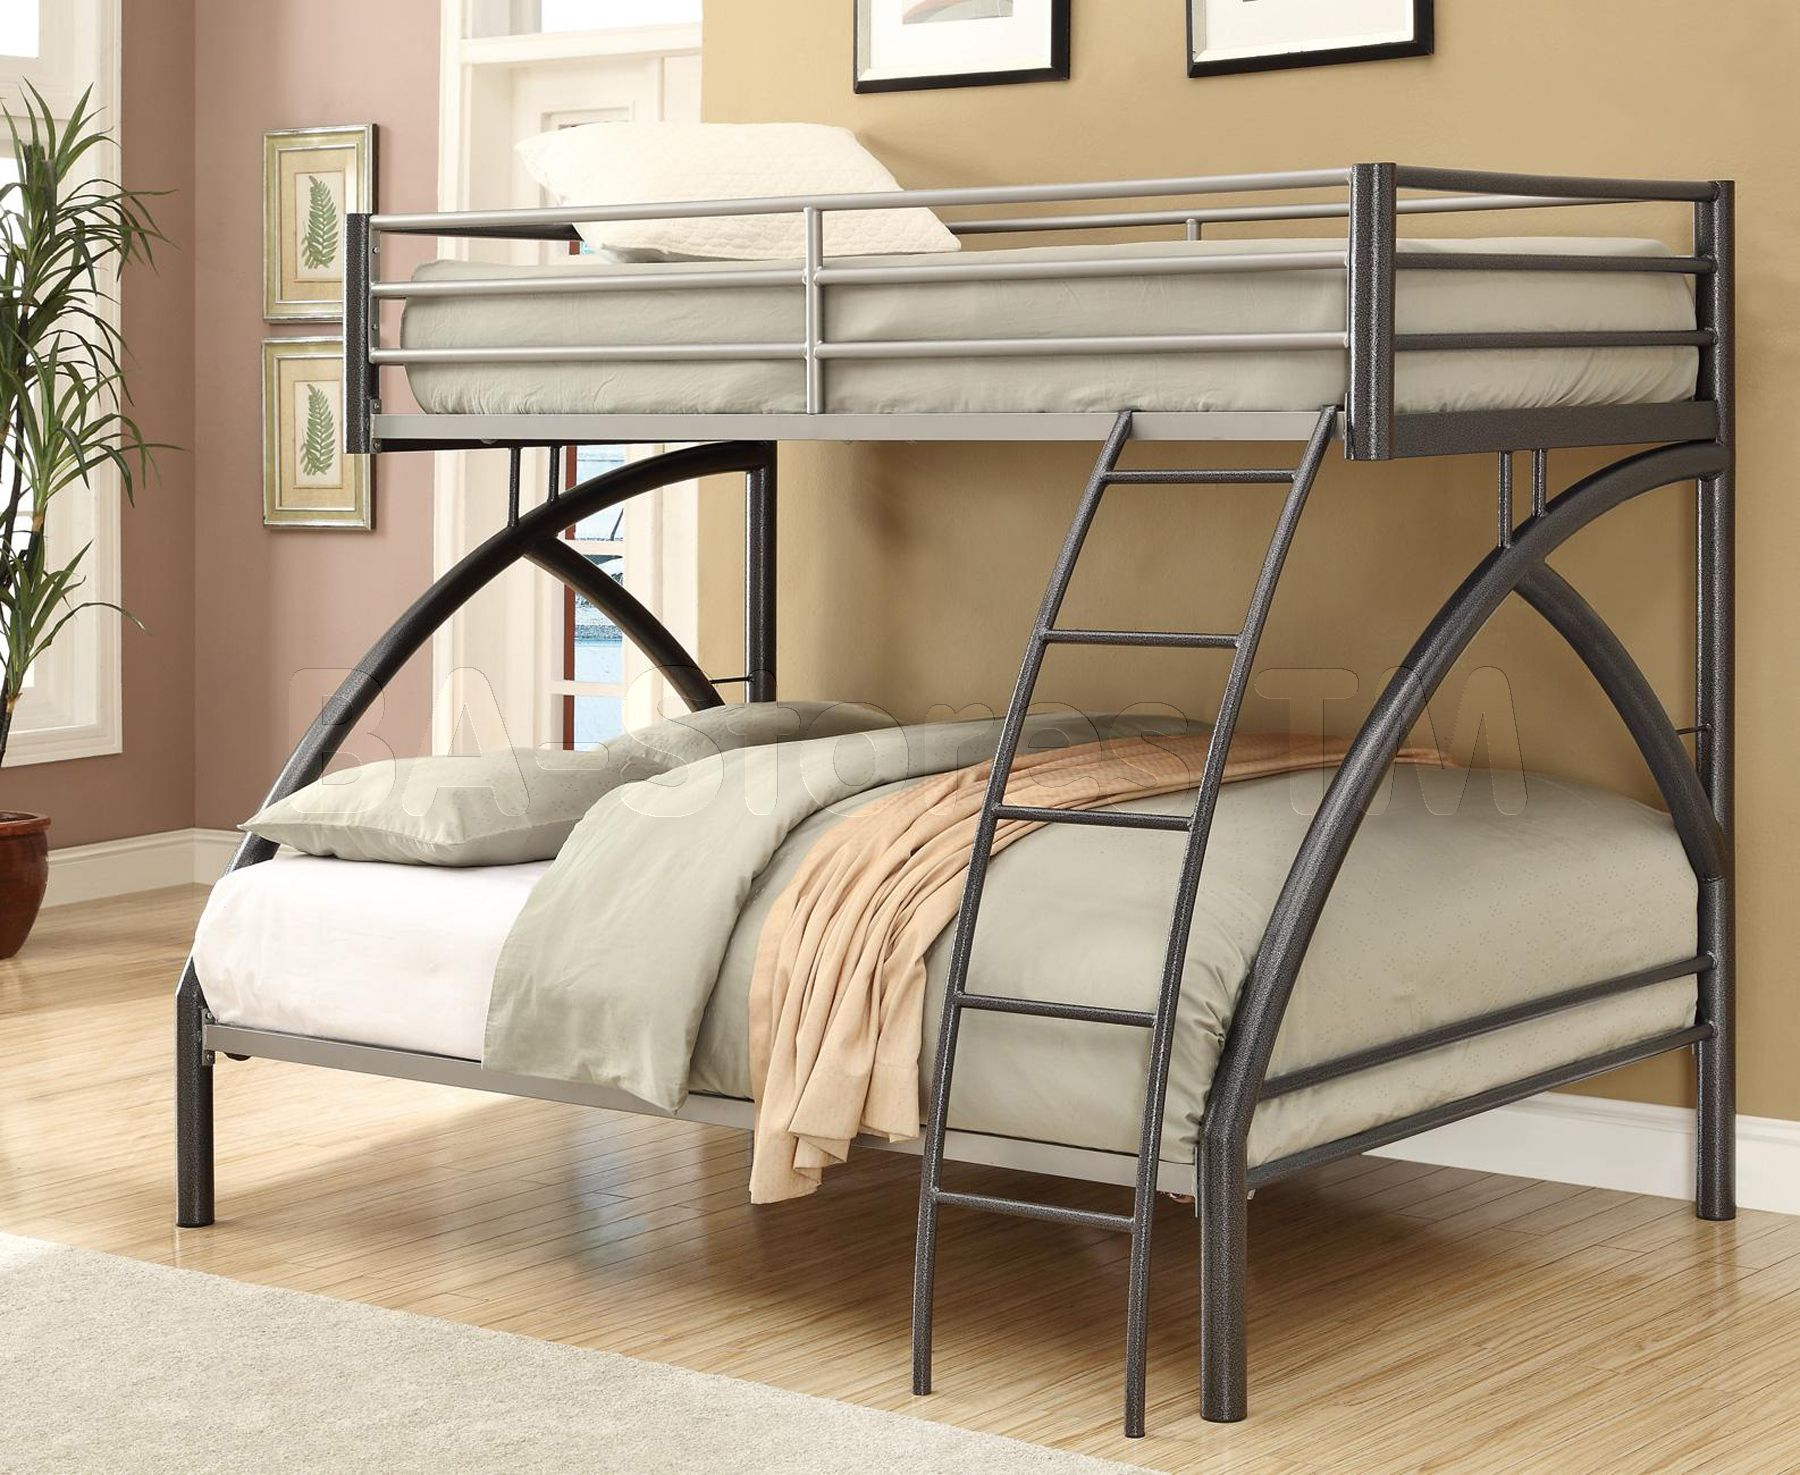 Best Resemblance Of Ikea Twin Bed Frames Con Imágenes Camas 400 x 300